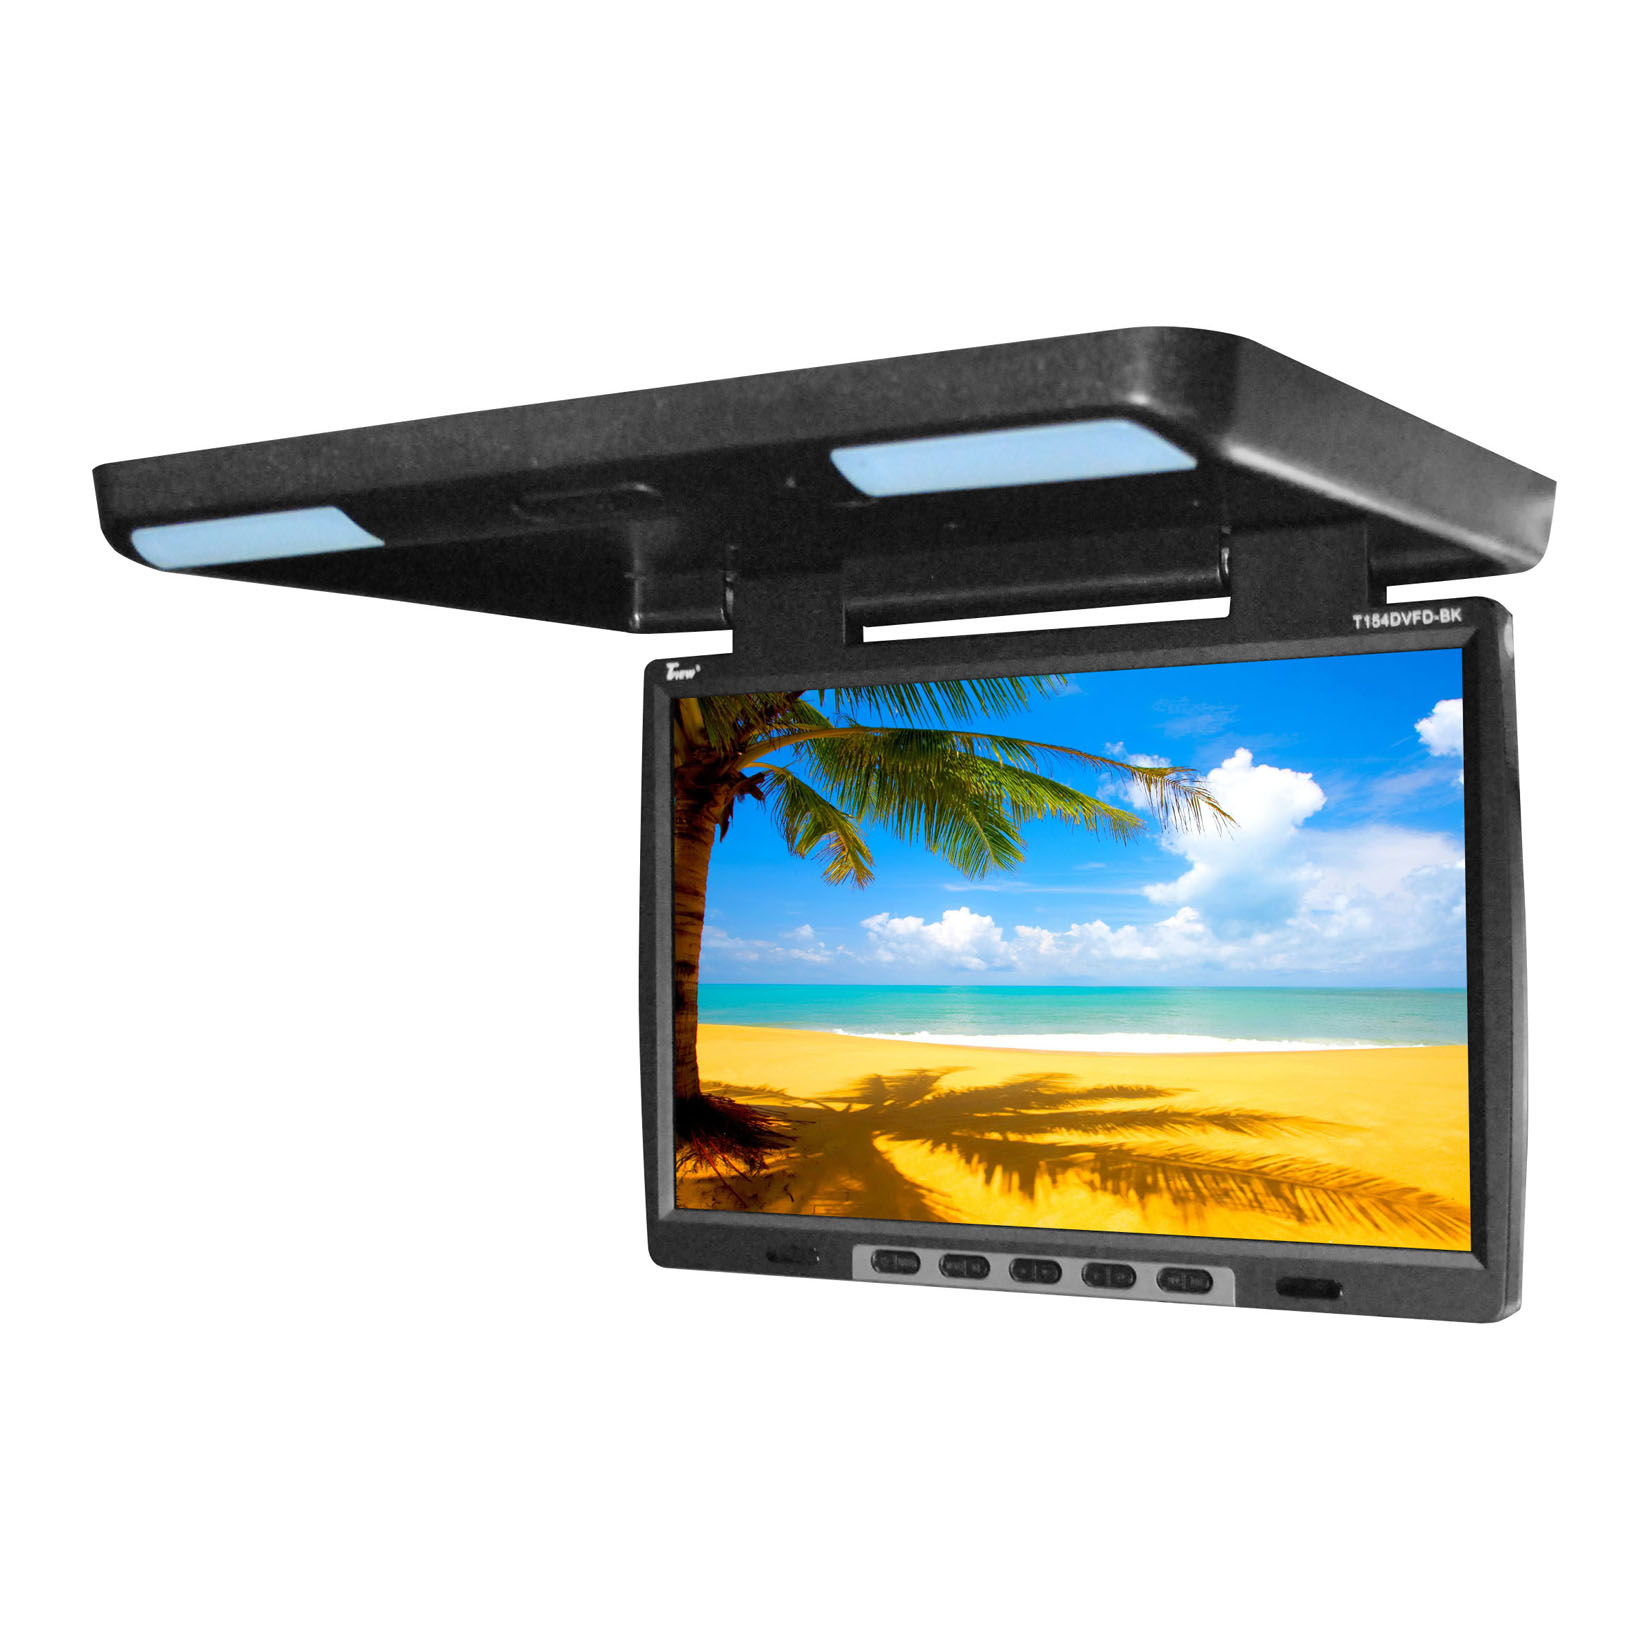 "Tview 15.4"" Flip Down Monitor with built in DVD IR/FM trans Black"